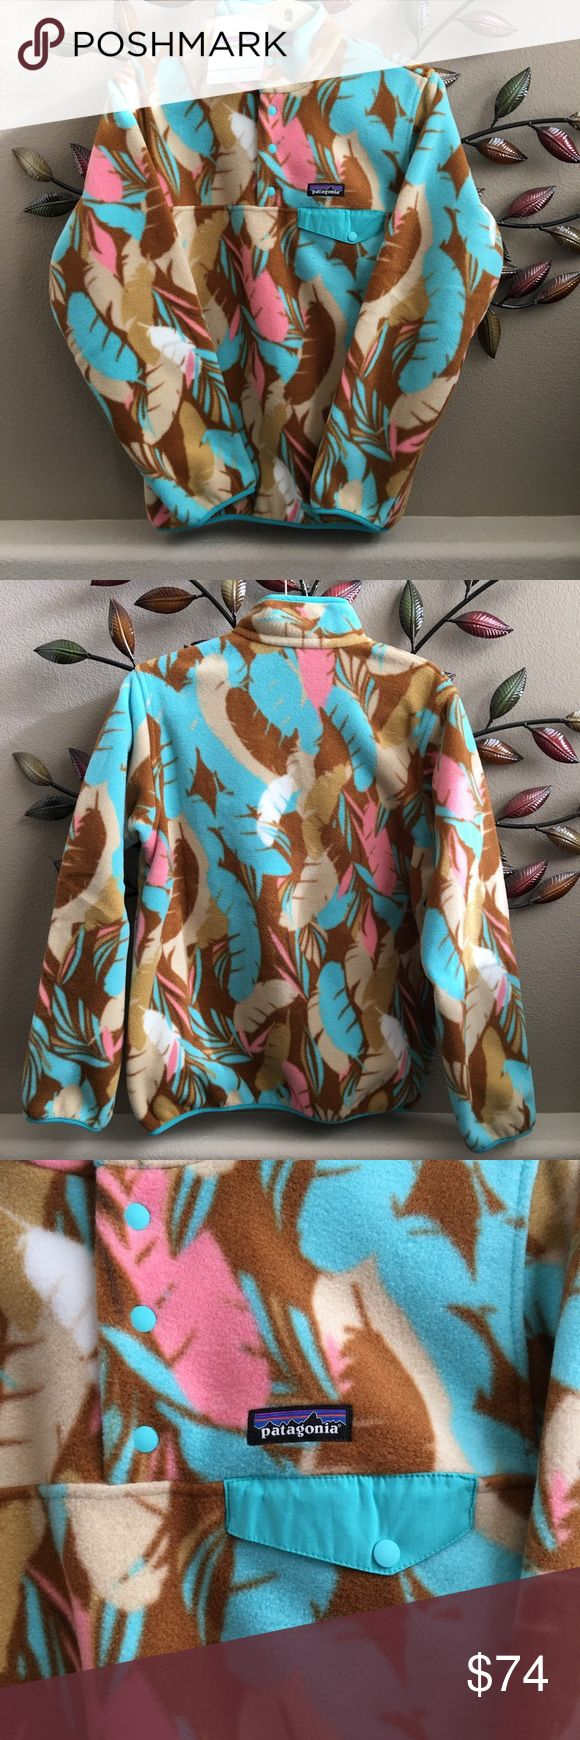 Darling NWT Patagonia Synchilla Snap T Pullover. Brand-new with tags darling feather print Patagonia women's size medium Snap T Pullover. Makes a great gift! Patagonia Sweaters